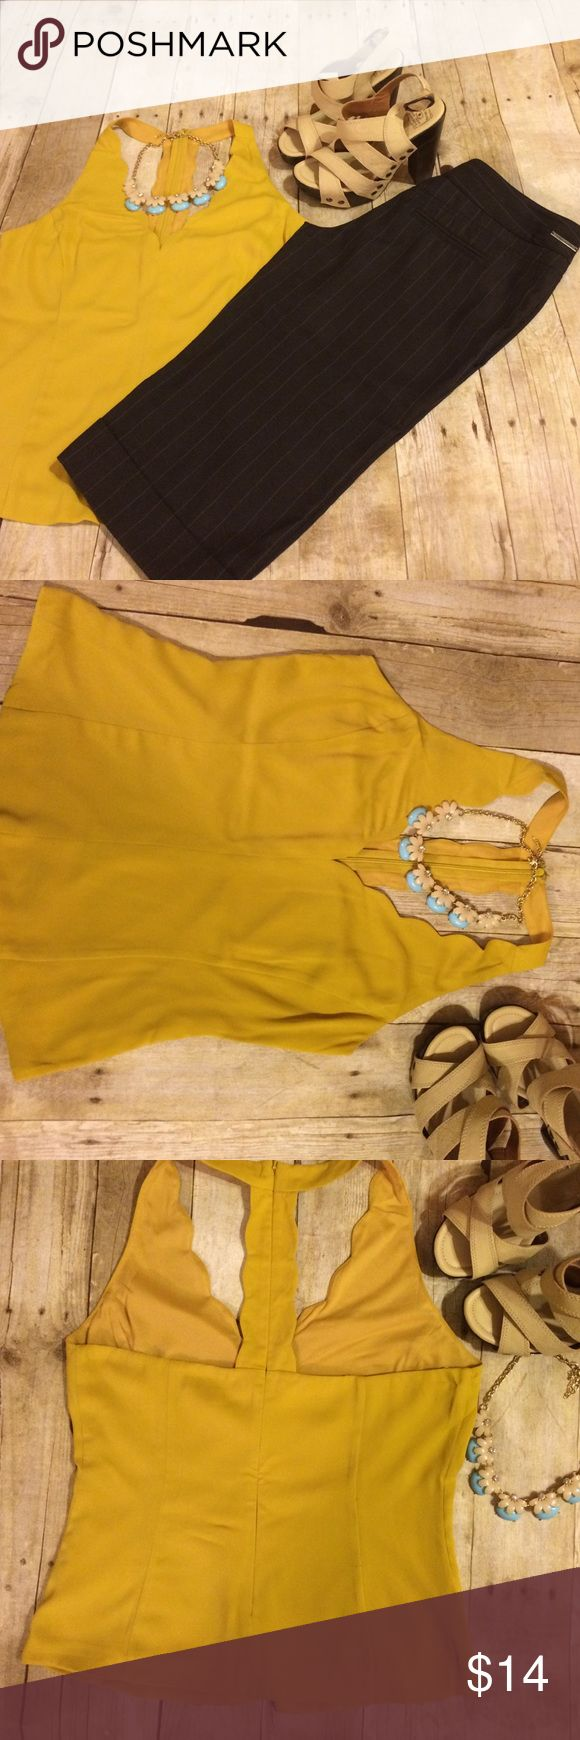 Naked zebra mustard scalloped top Just adorable scalloped top with open back. Perfect for spring/summer. Brand new without tags Naked Zebra Tops Tank Tops